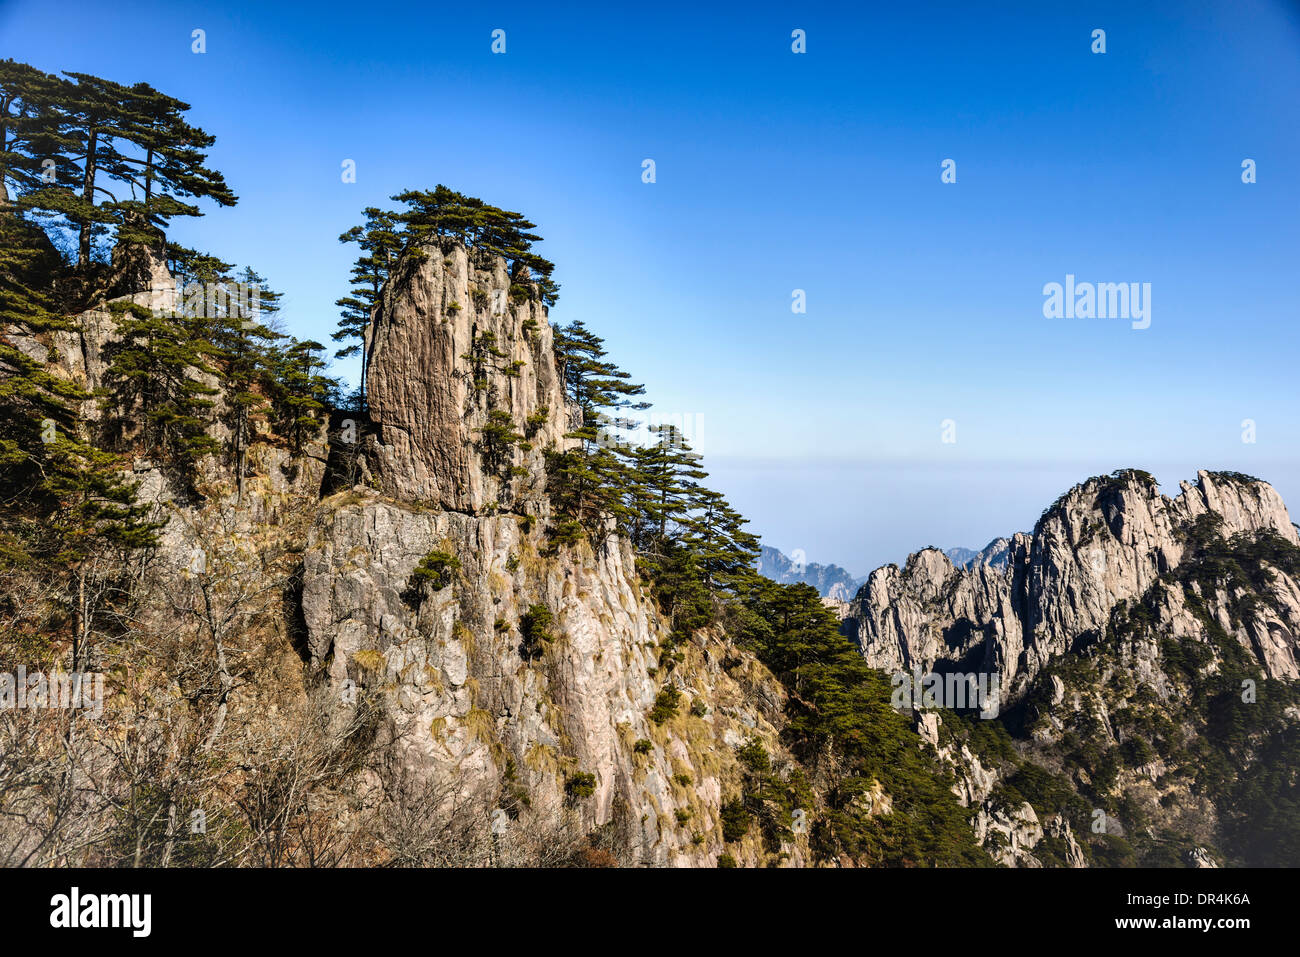 Trees growing on rocky mountains, Huangshan, Anhui, China - Stock Image